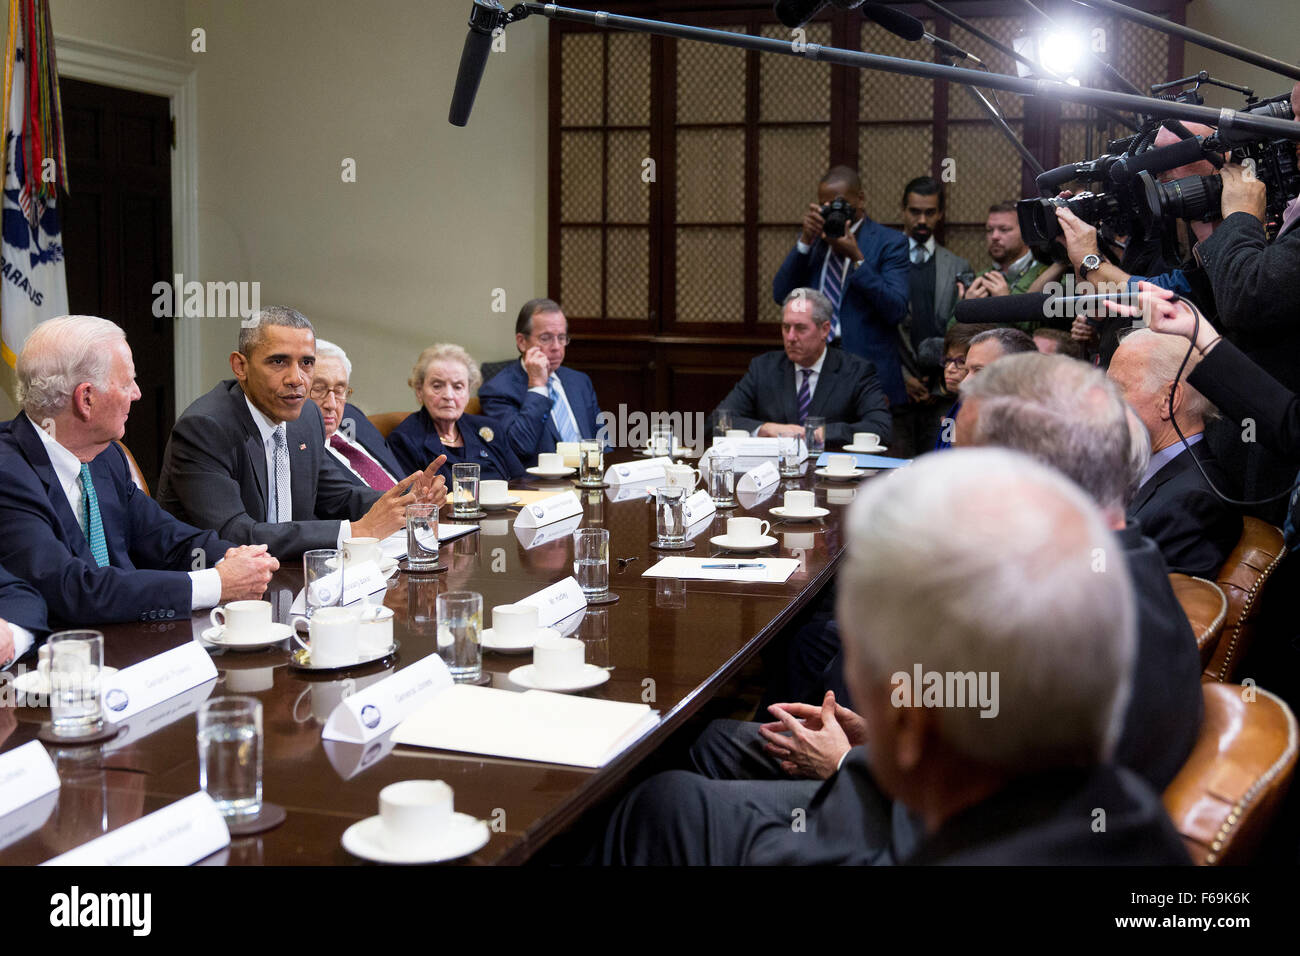 United States President Barack Obama, second left, speaks while meeting with current and former diplomatic and national - Stock Image